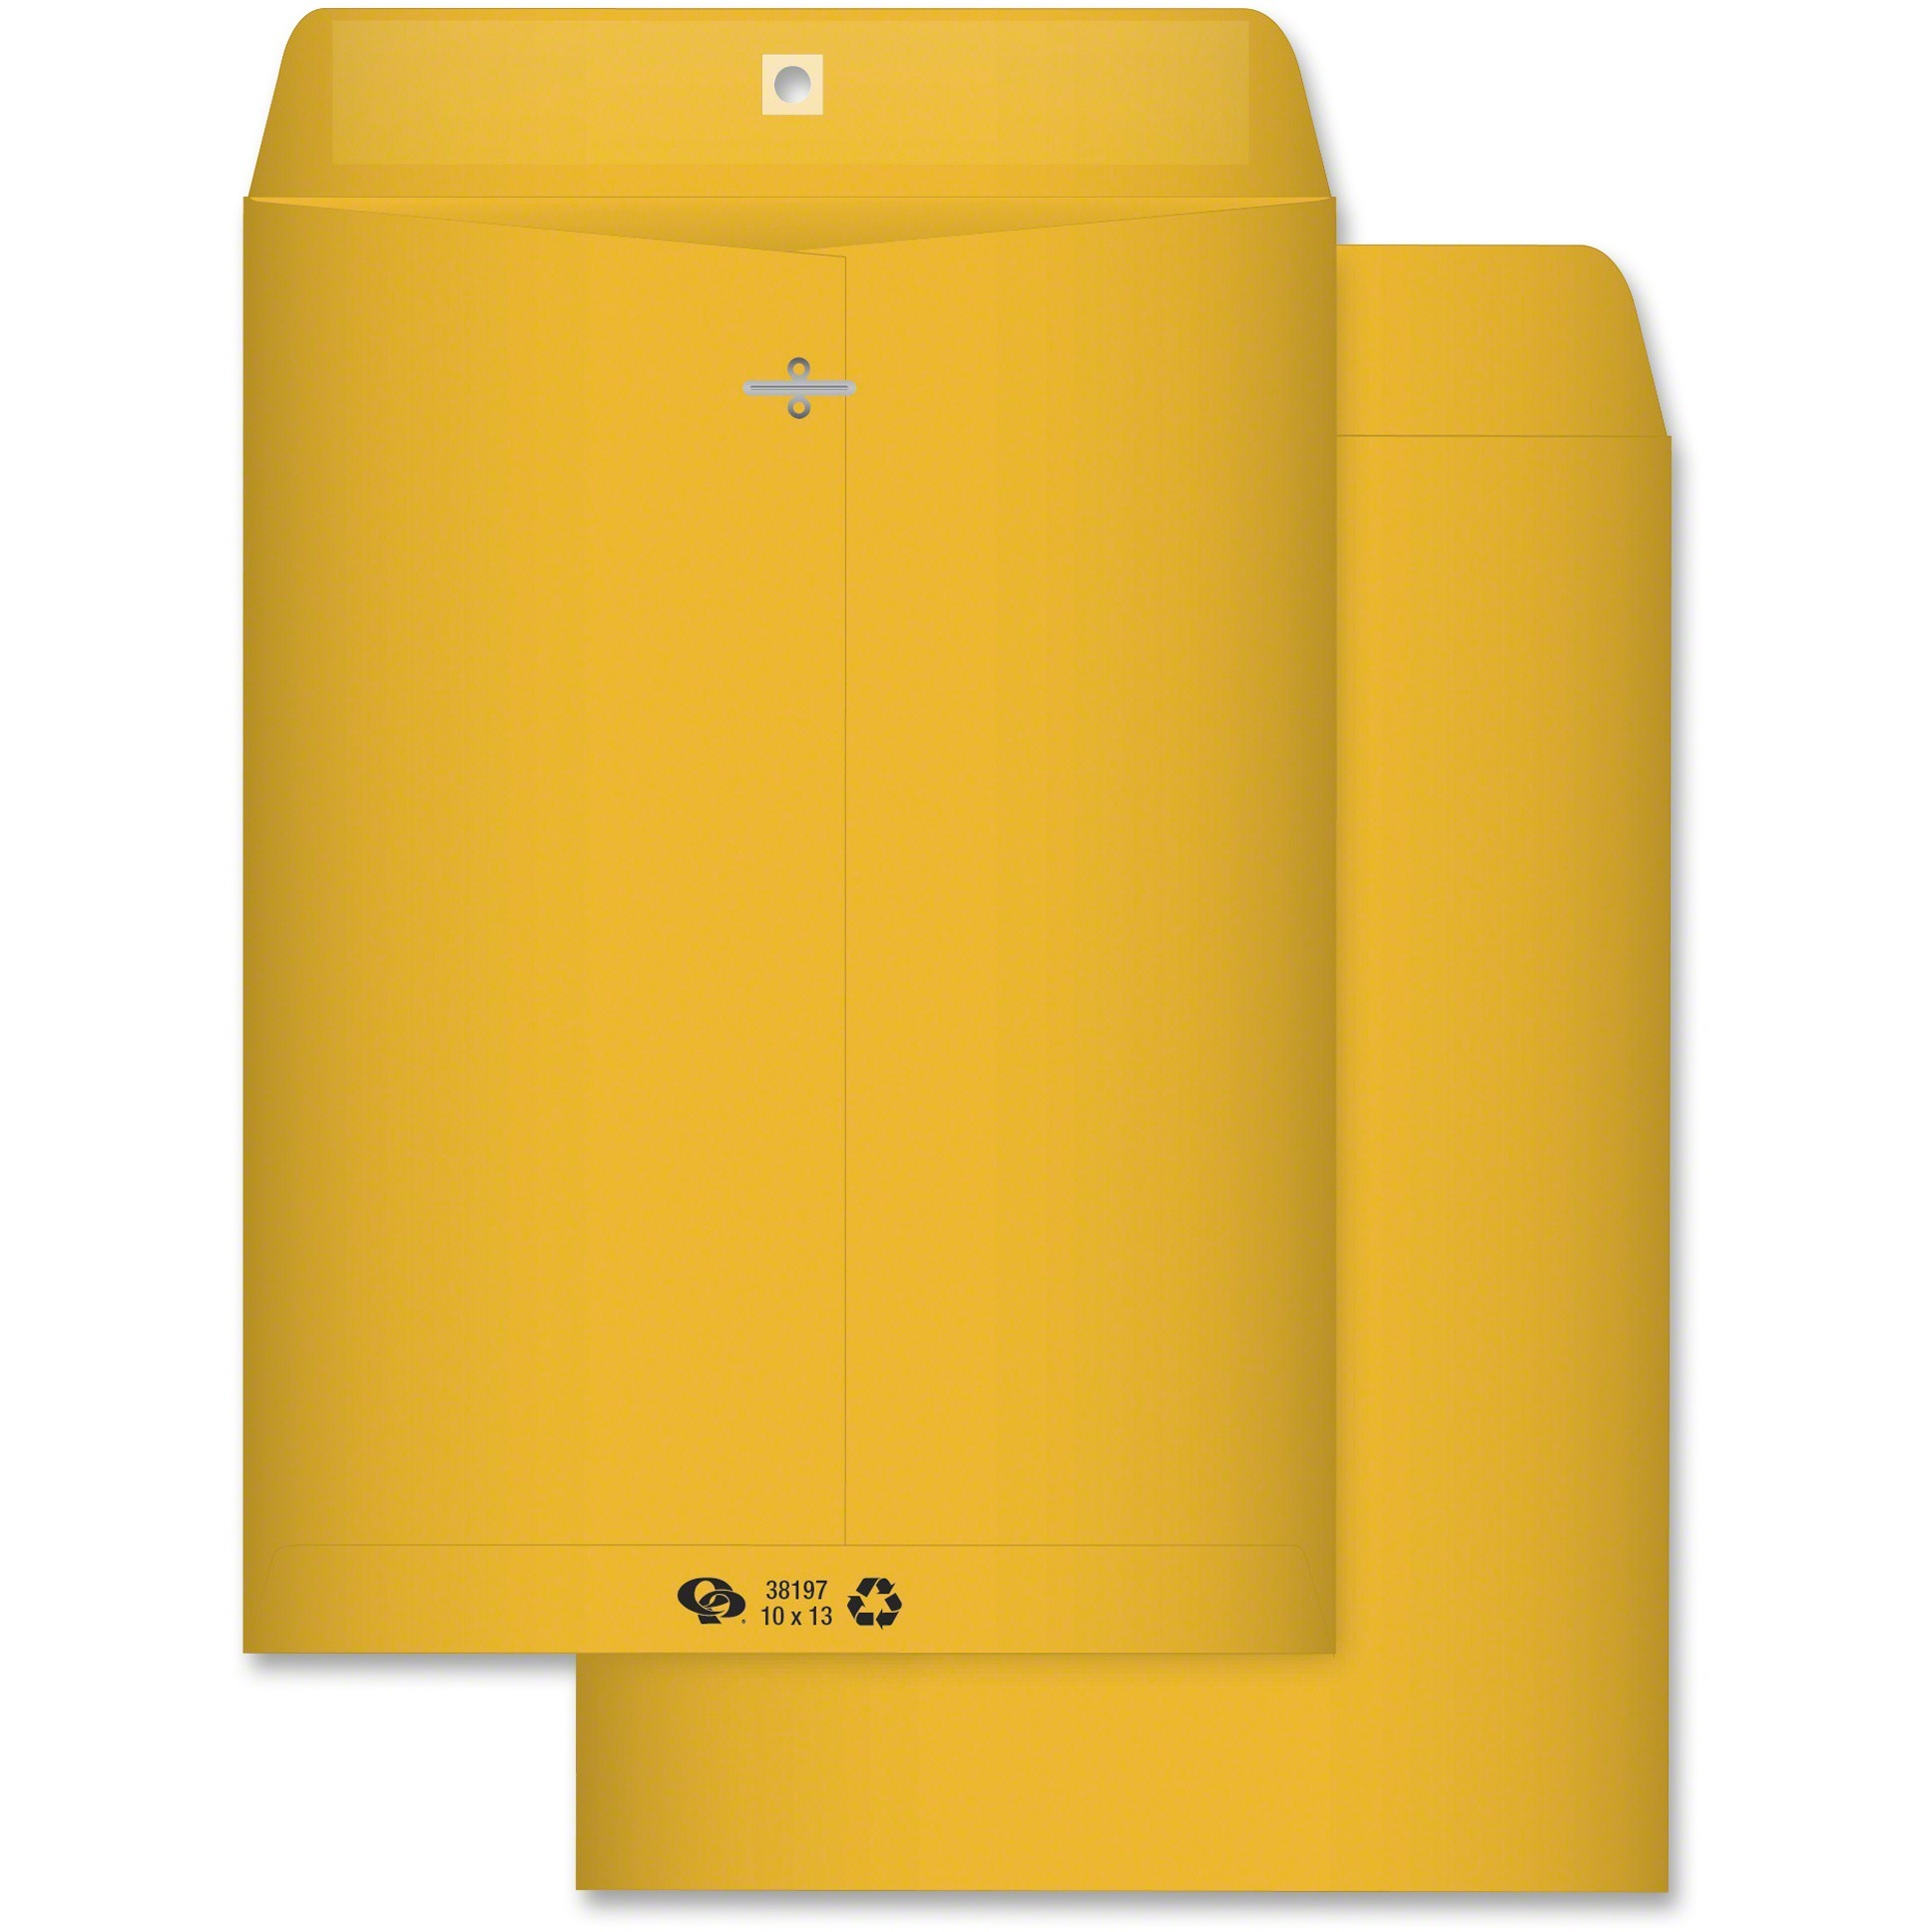 Clasp Envelope, Recycled, 10 x 13, 28lb, Light Brown, 100/Box